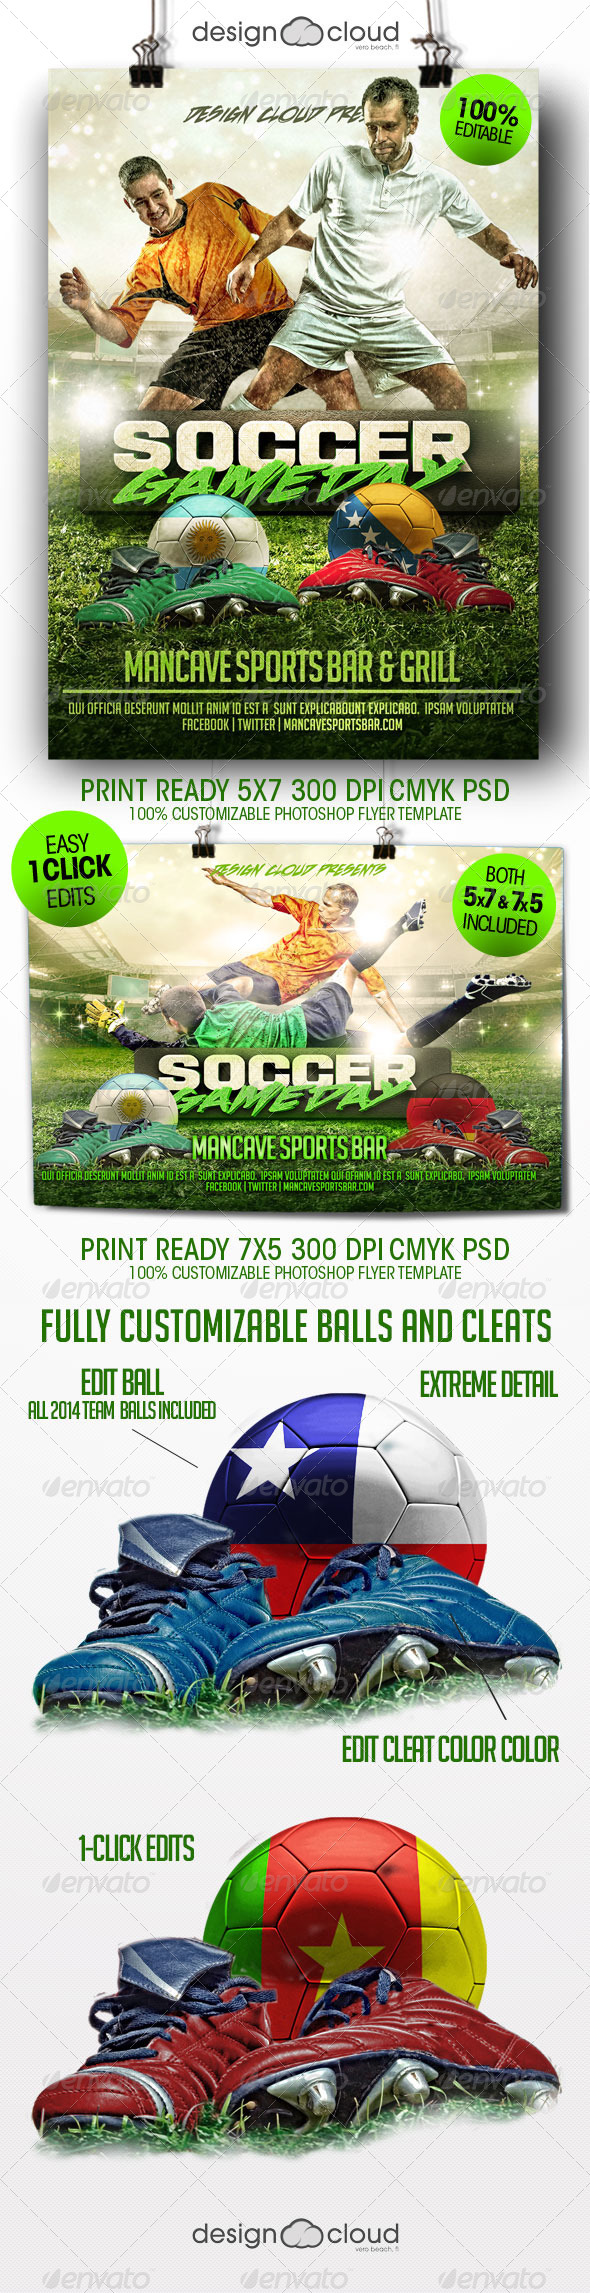 Soccer Game Day Flyer Template - Sports Events